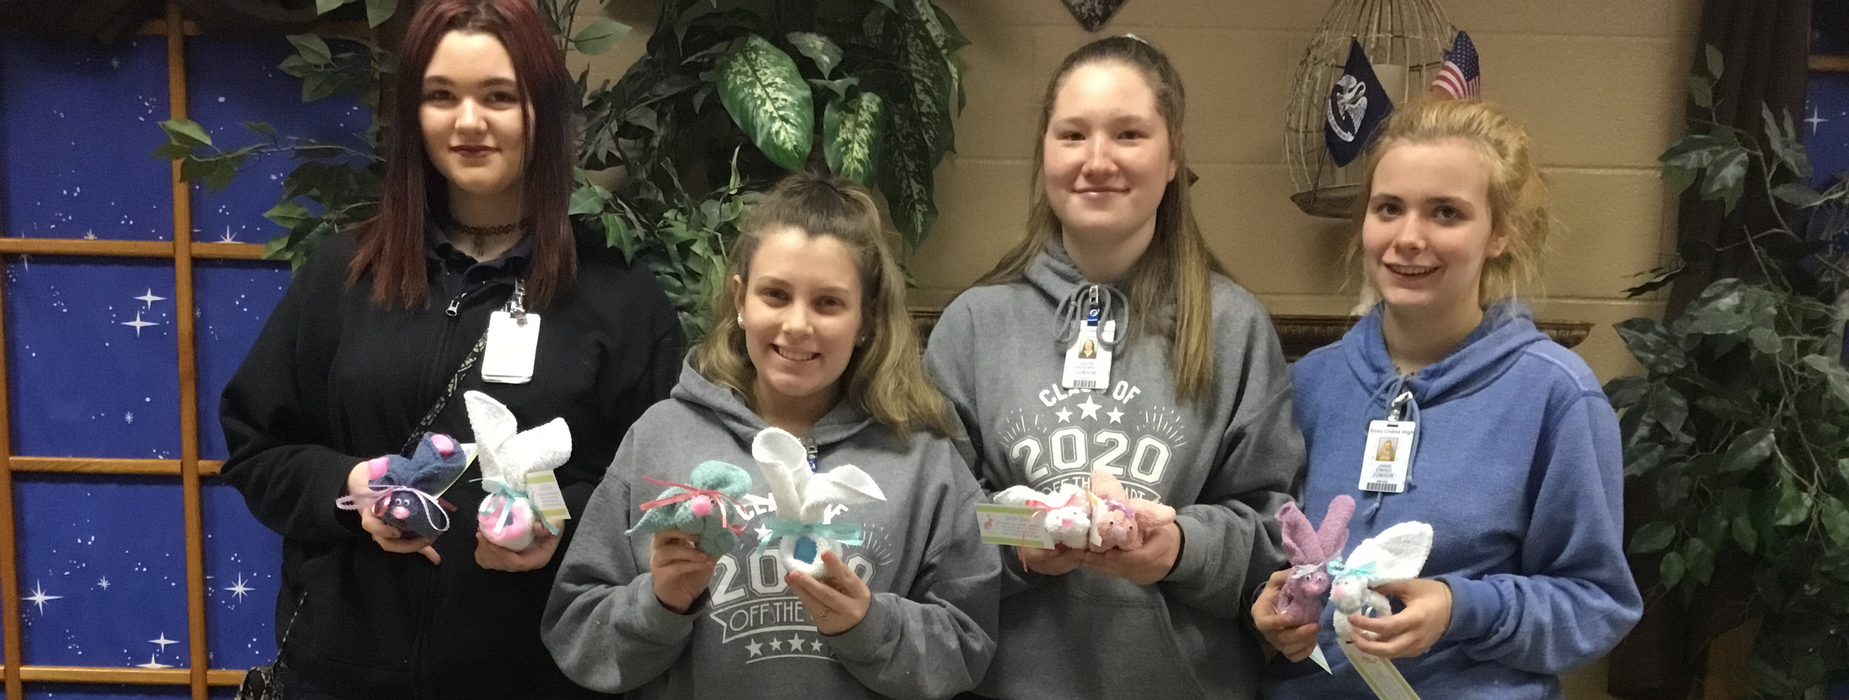 Booboo Bunnies made by Child Development students. Kaitlyn, Kenndey, Sadie and Janie